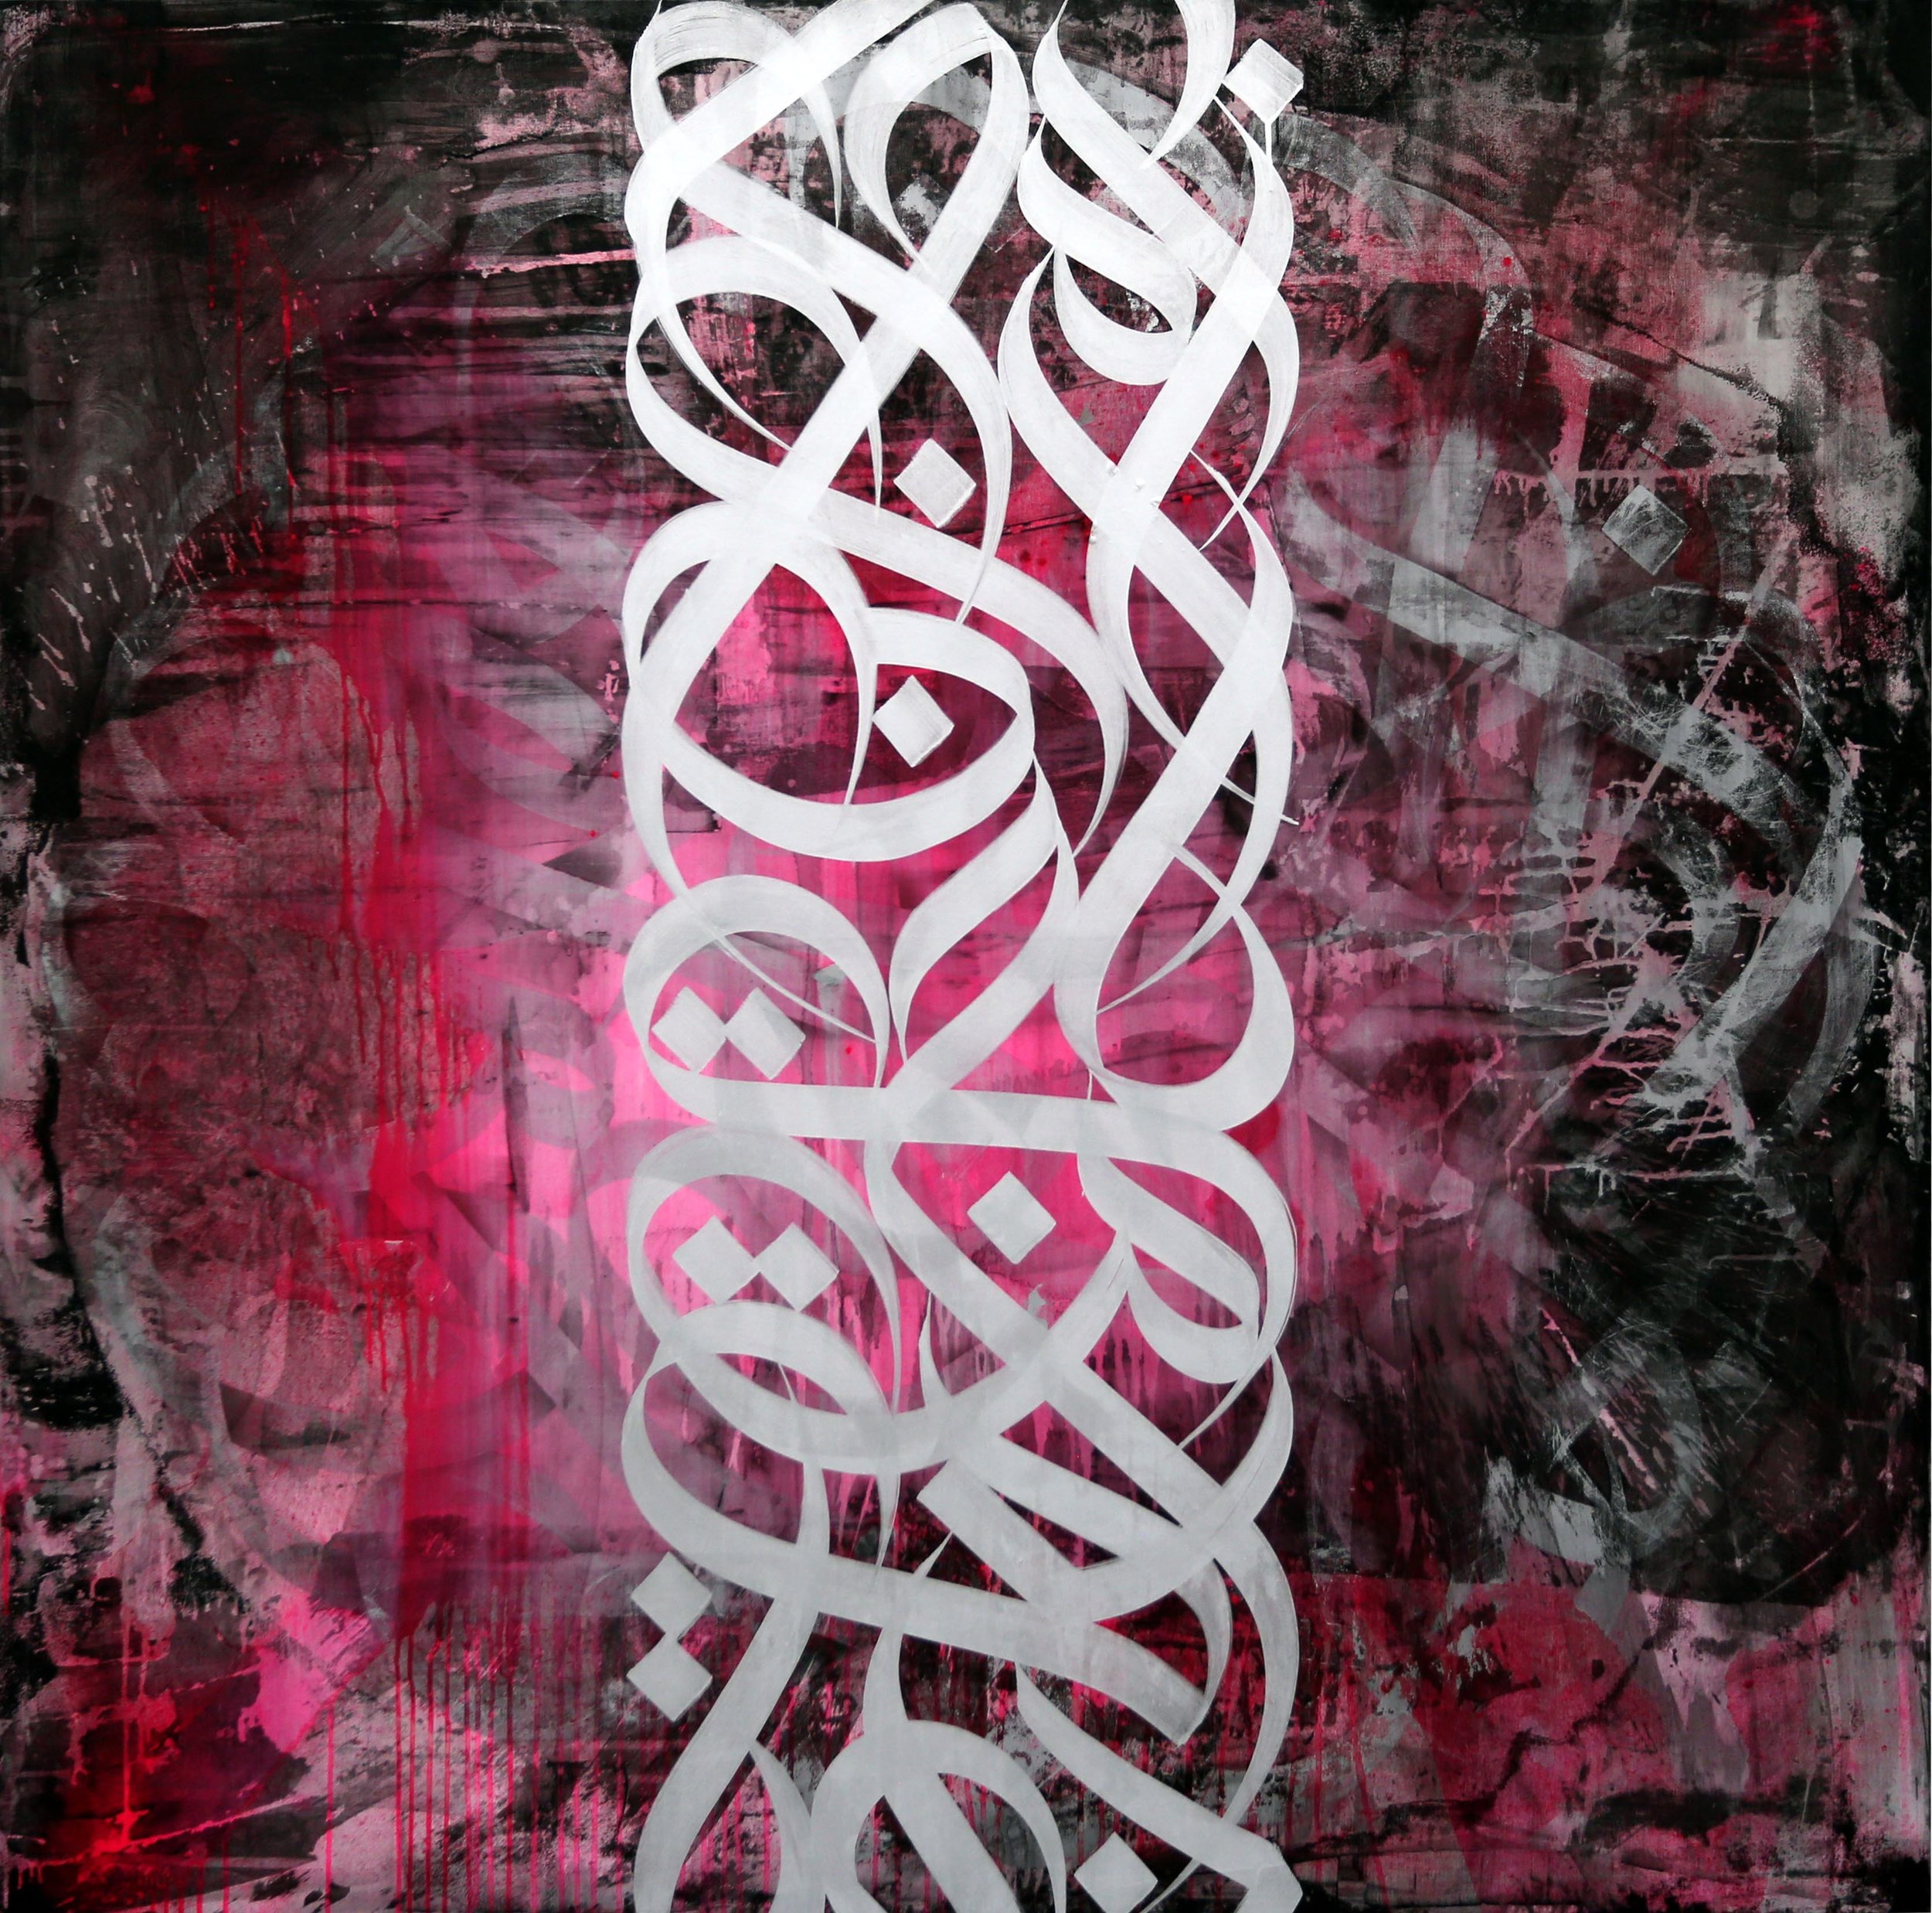 1463822939_eL_Seed_Time_Is_A_Passionate_Sculptor_Of_Men_150x150cm_Acrylic_And_Spray_Paint_On_Canvas.jpg